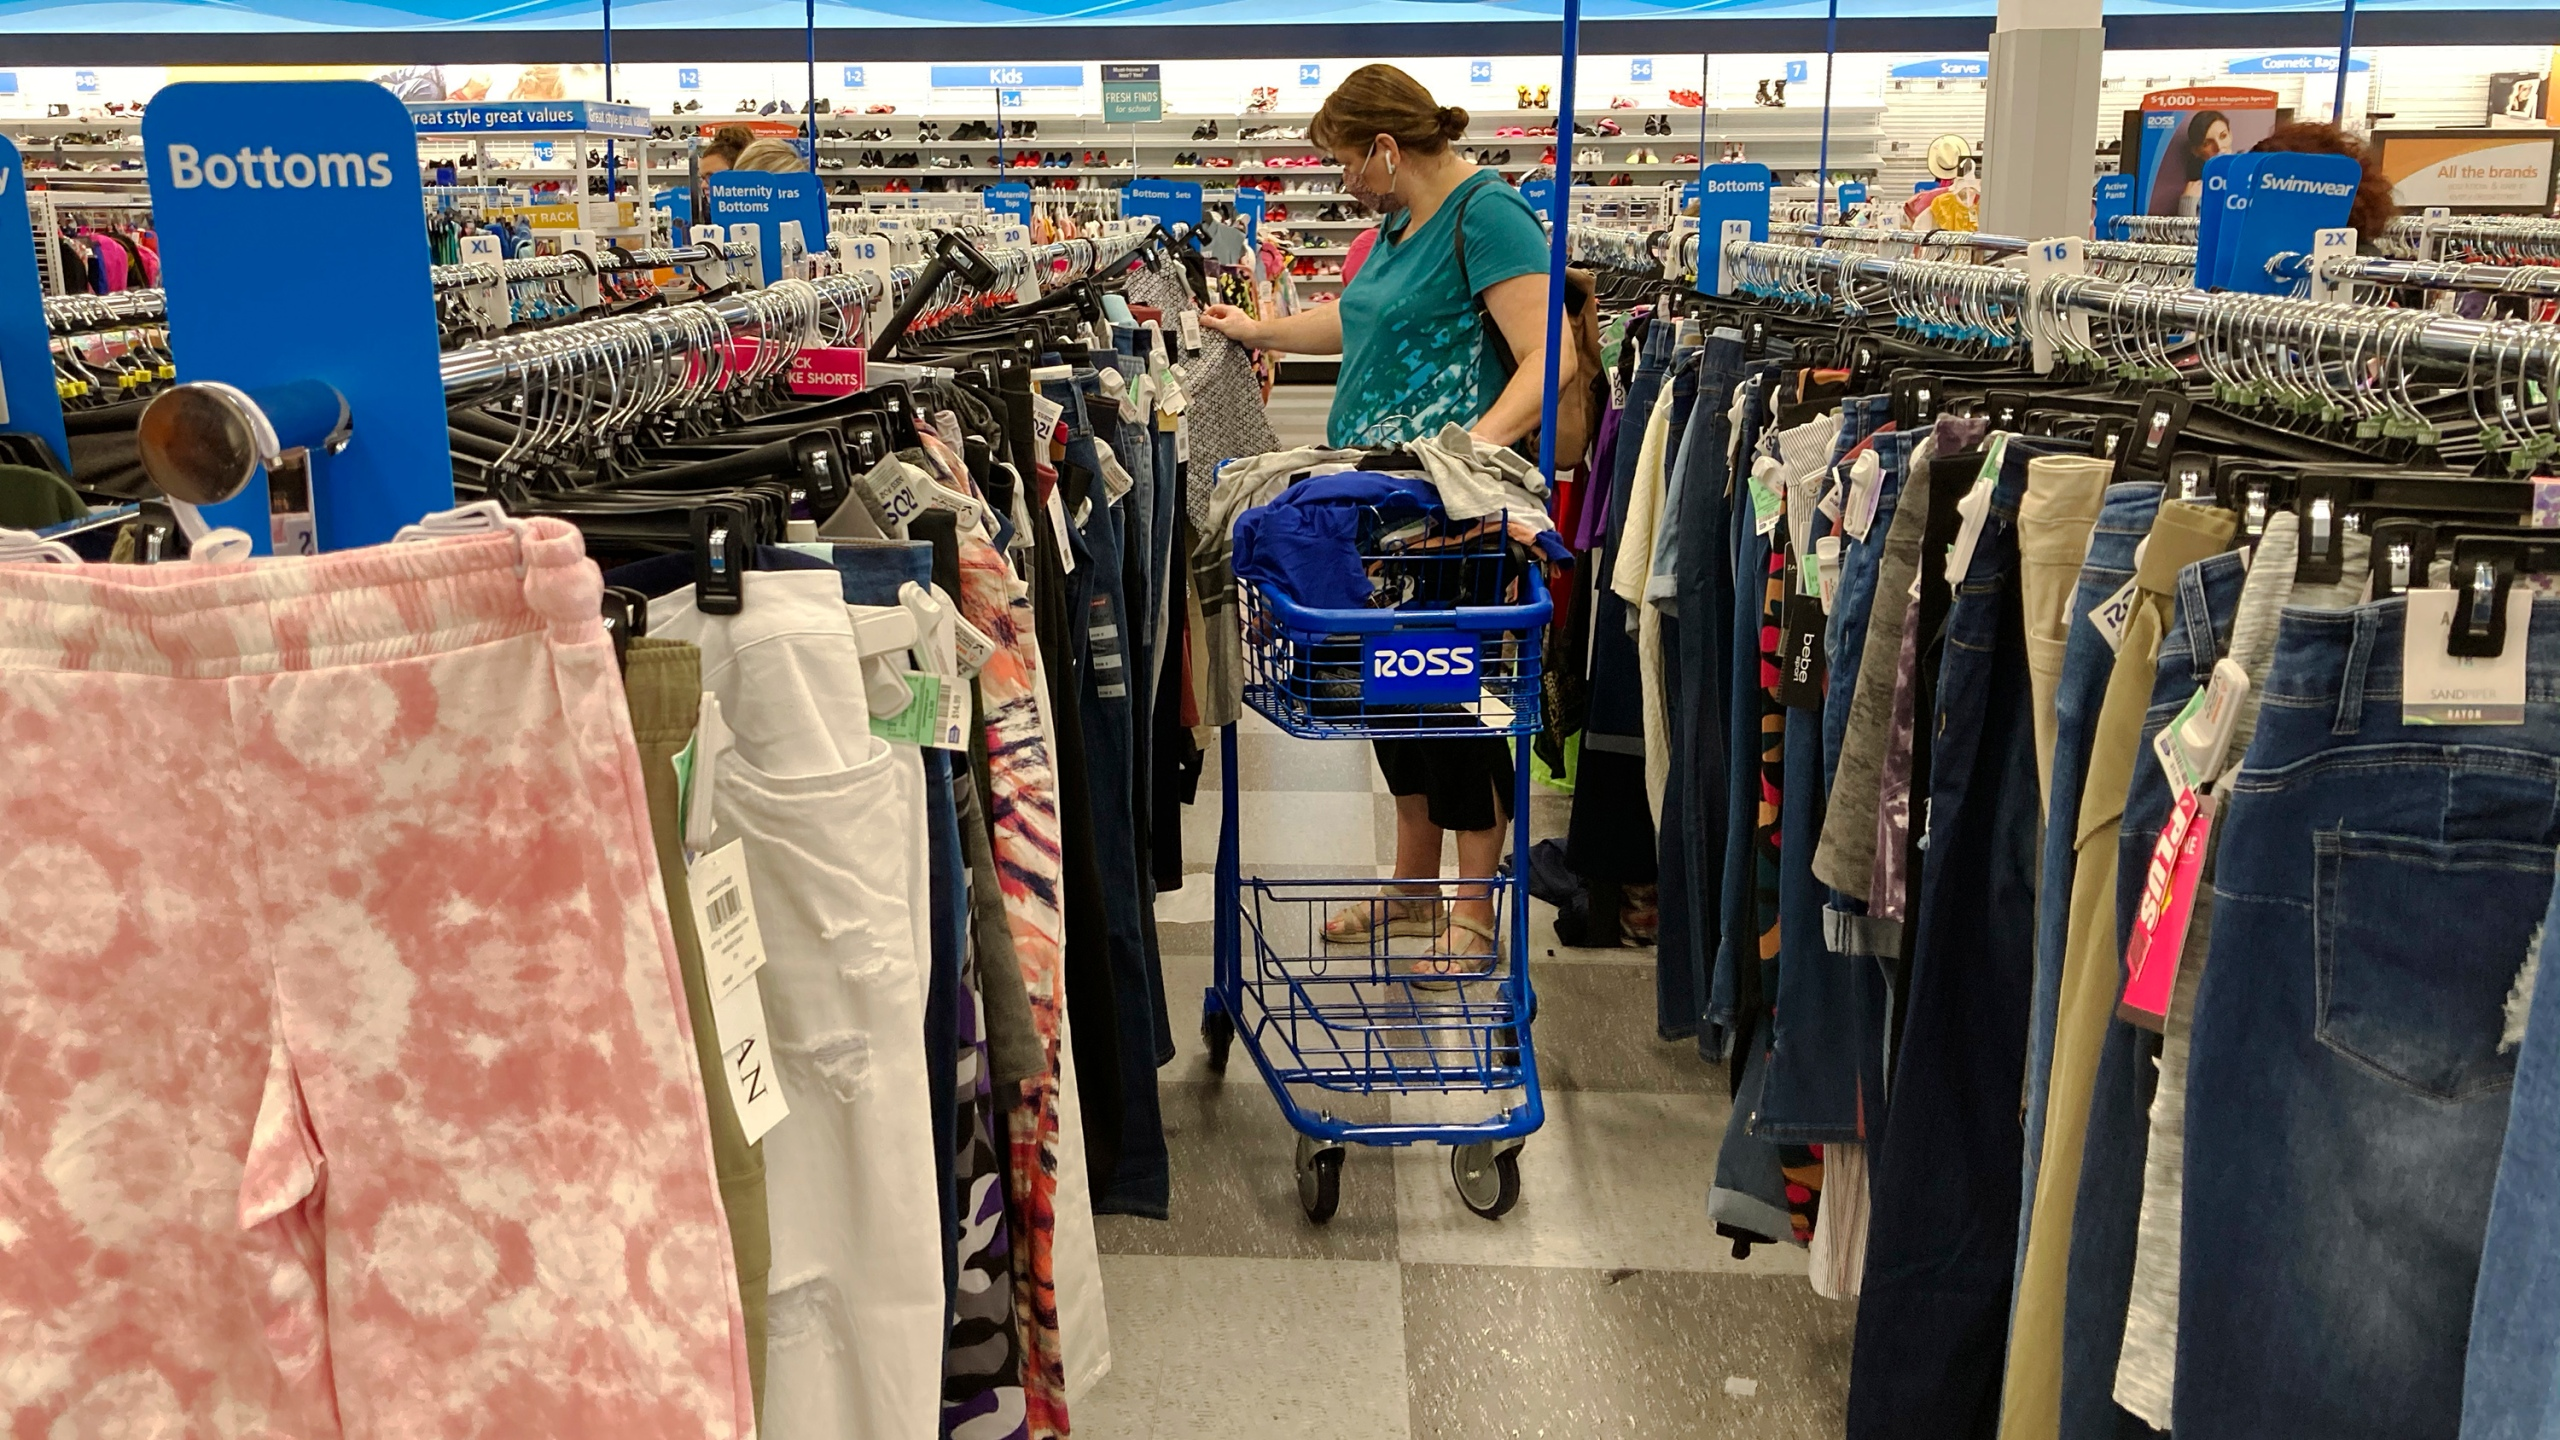 A consumer shops as she wears a mask at a retail store in Morton Grove, Ill., Wednesday, July 21, 2021. With fewer pandemic-related restrictions this year, the option to do more can result in the urge to spend. (AP Photo/Nam Y. Huh)